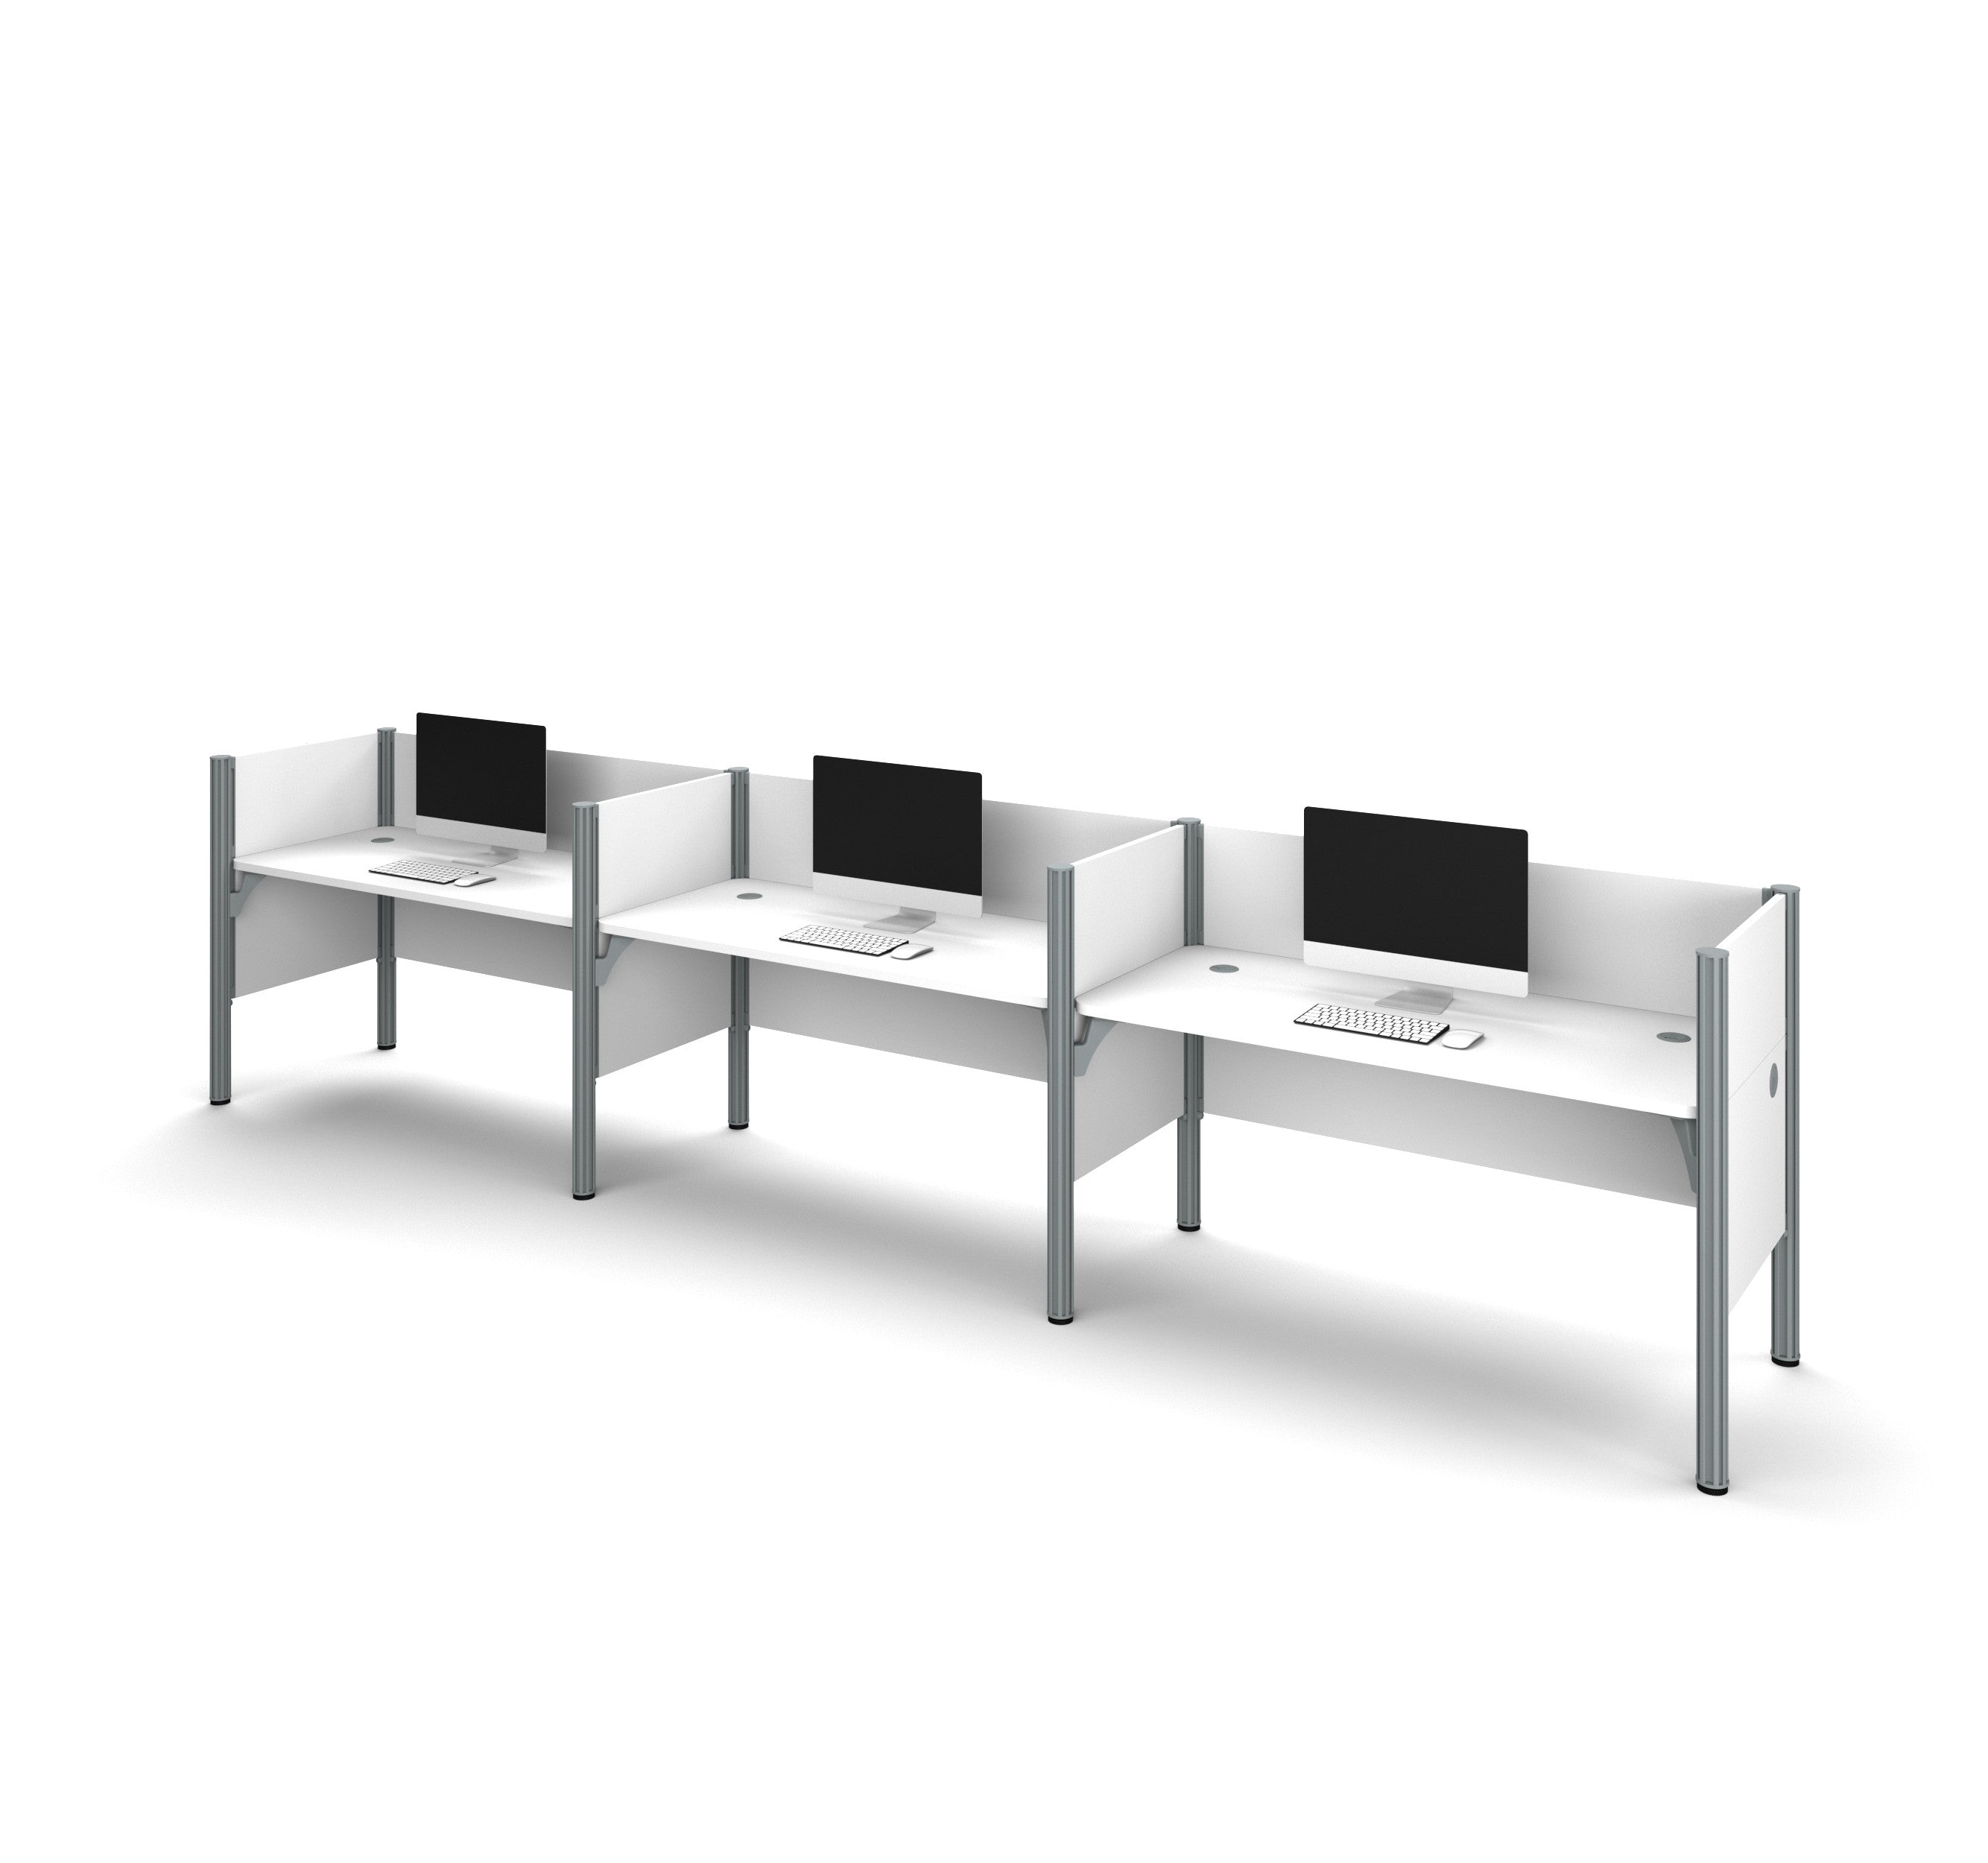 "Pro-Biz Premium Triple Workstation with 43"" Privacy Panel in White"